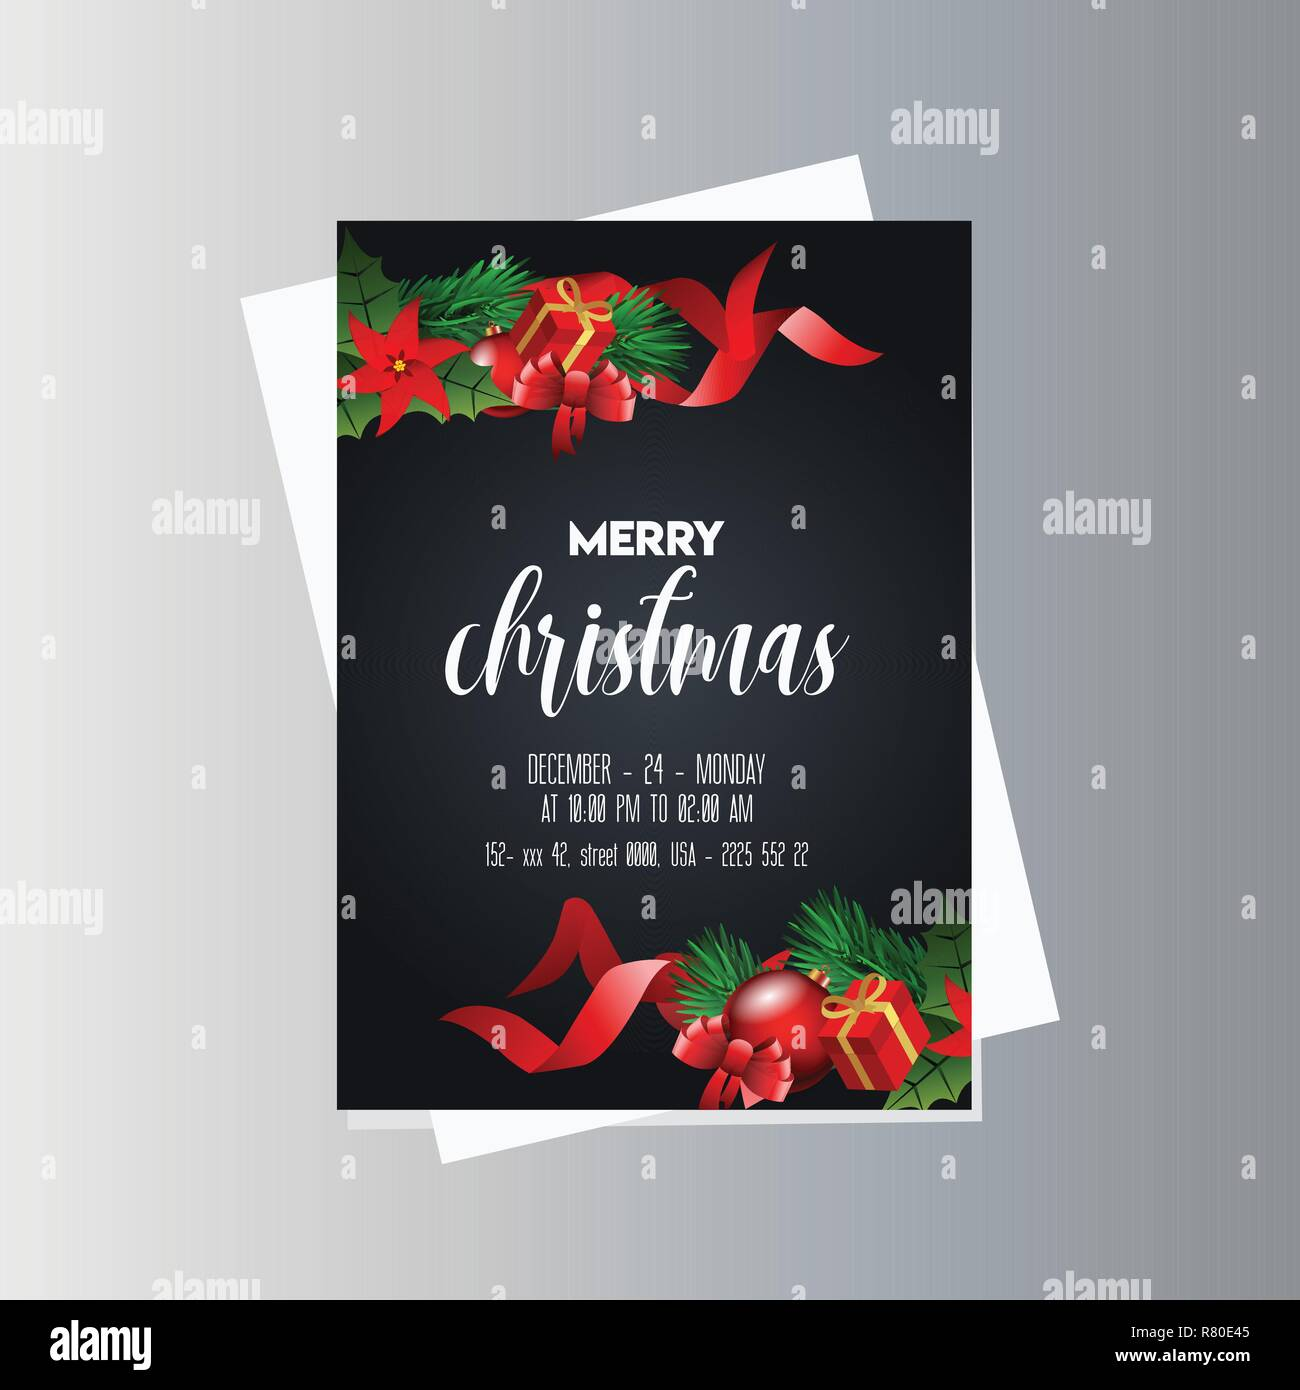 Christmas Party Flyer Template.Vintage Christmas Party Flyer Template Stock Vector Art